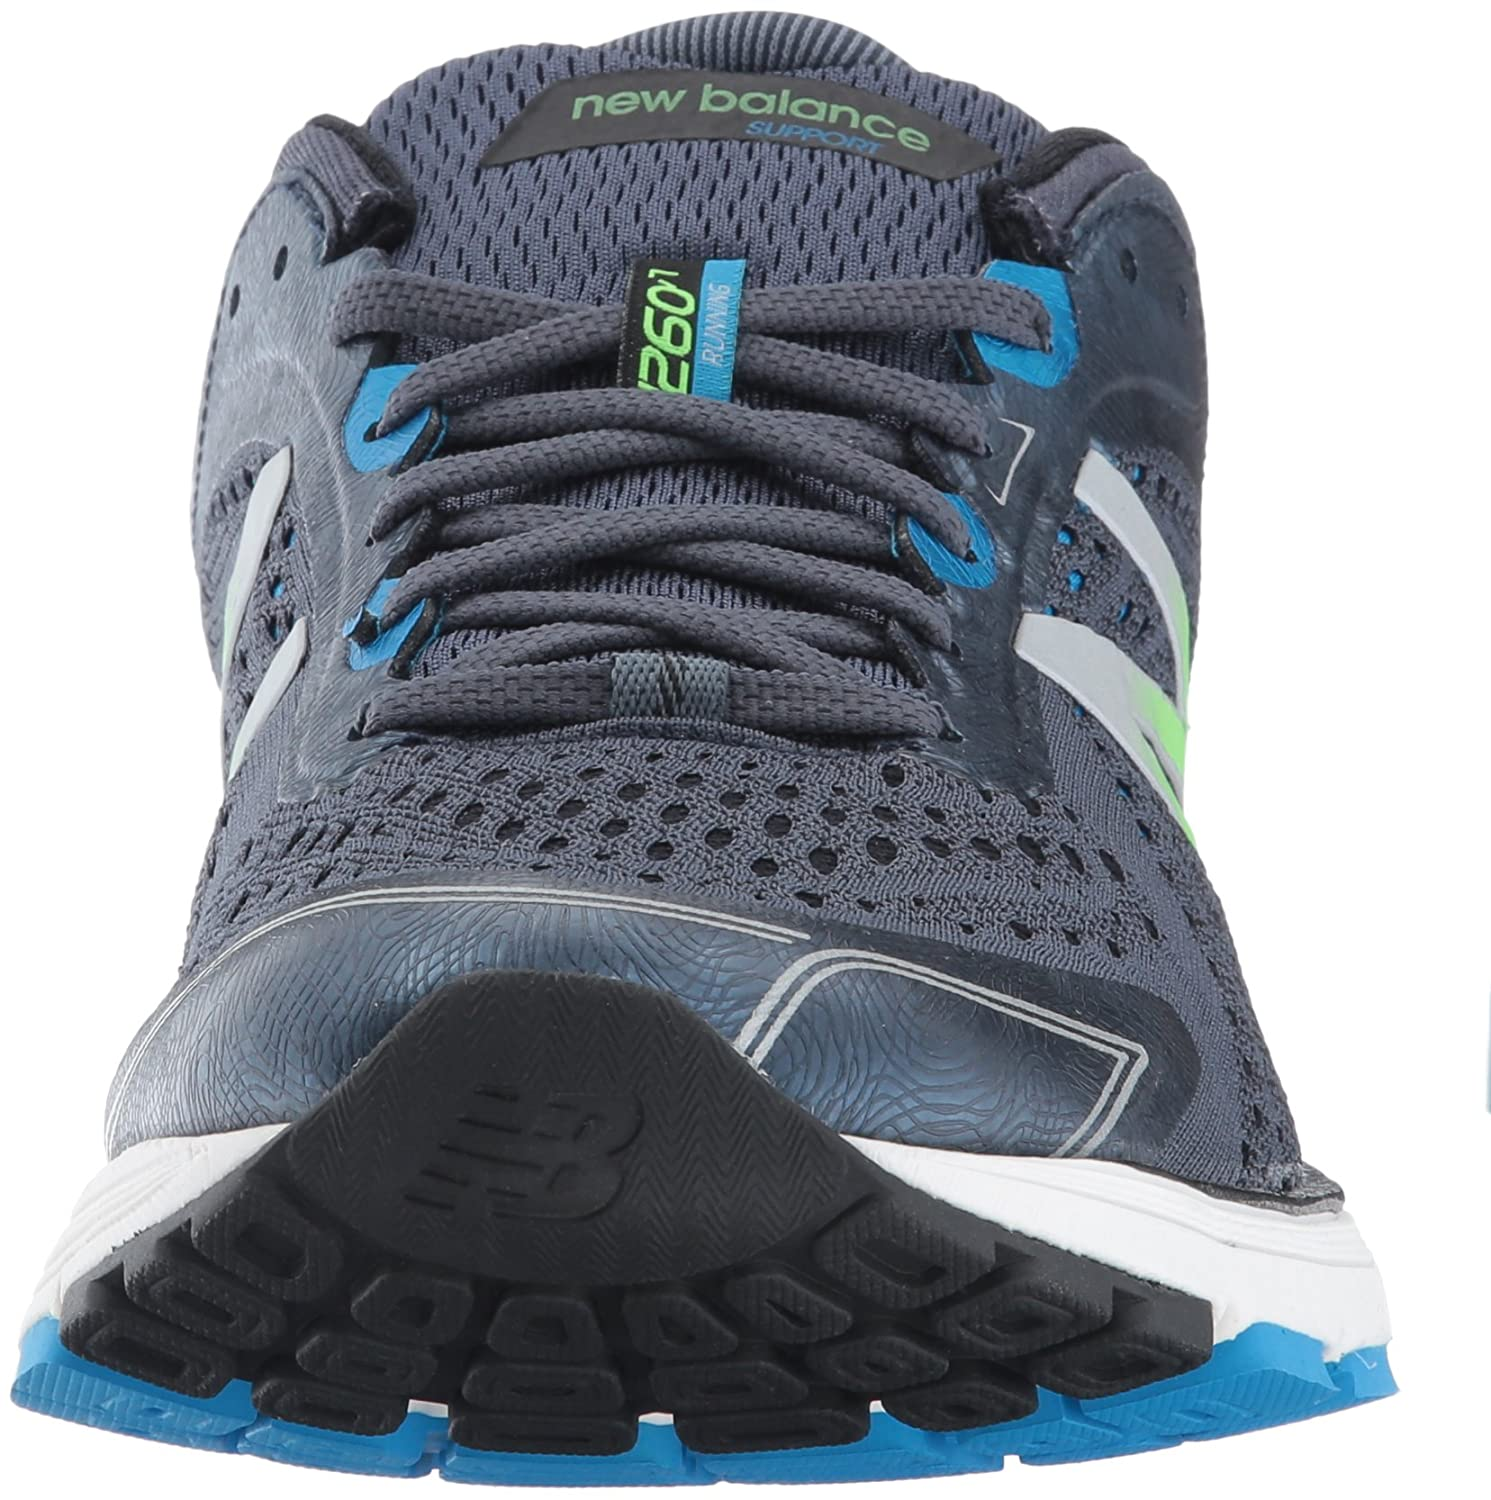 411b7915f242a new balance Men s 1260 V7 Grey and Black Running Shoes - 8 UK India (42 EU)(8.5  US) (M1260BB7)  Buy Online at Low Prices in India - Amazon.in